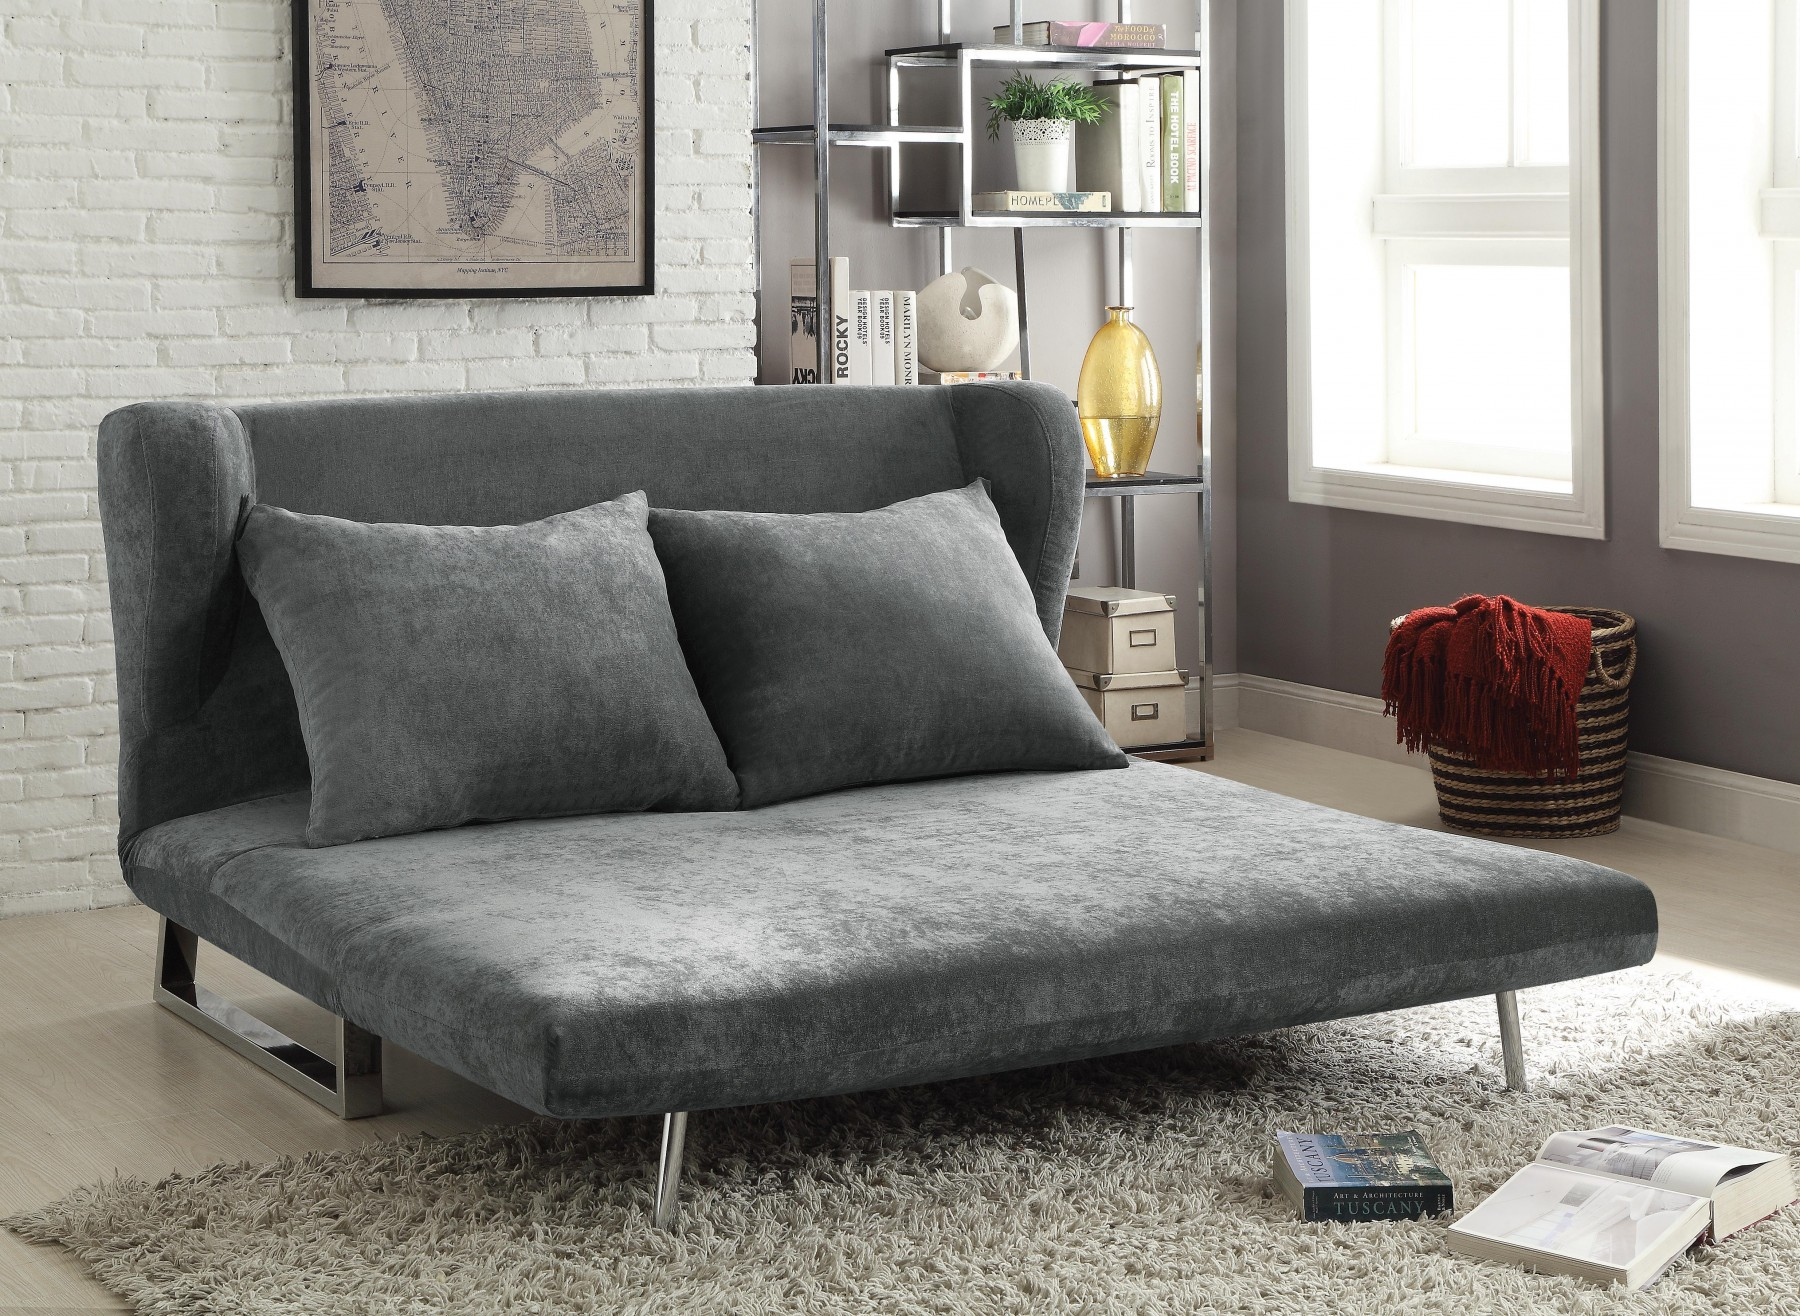 clarke fabric queen sleeper sofa bed small traditional sectional contemporary grey converts from to chaise